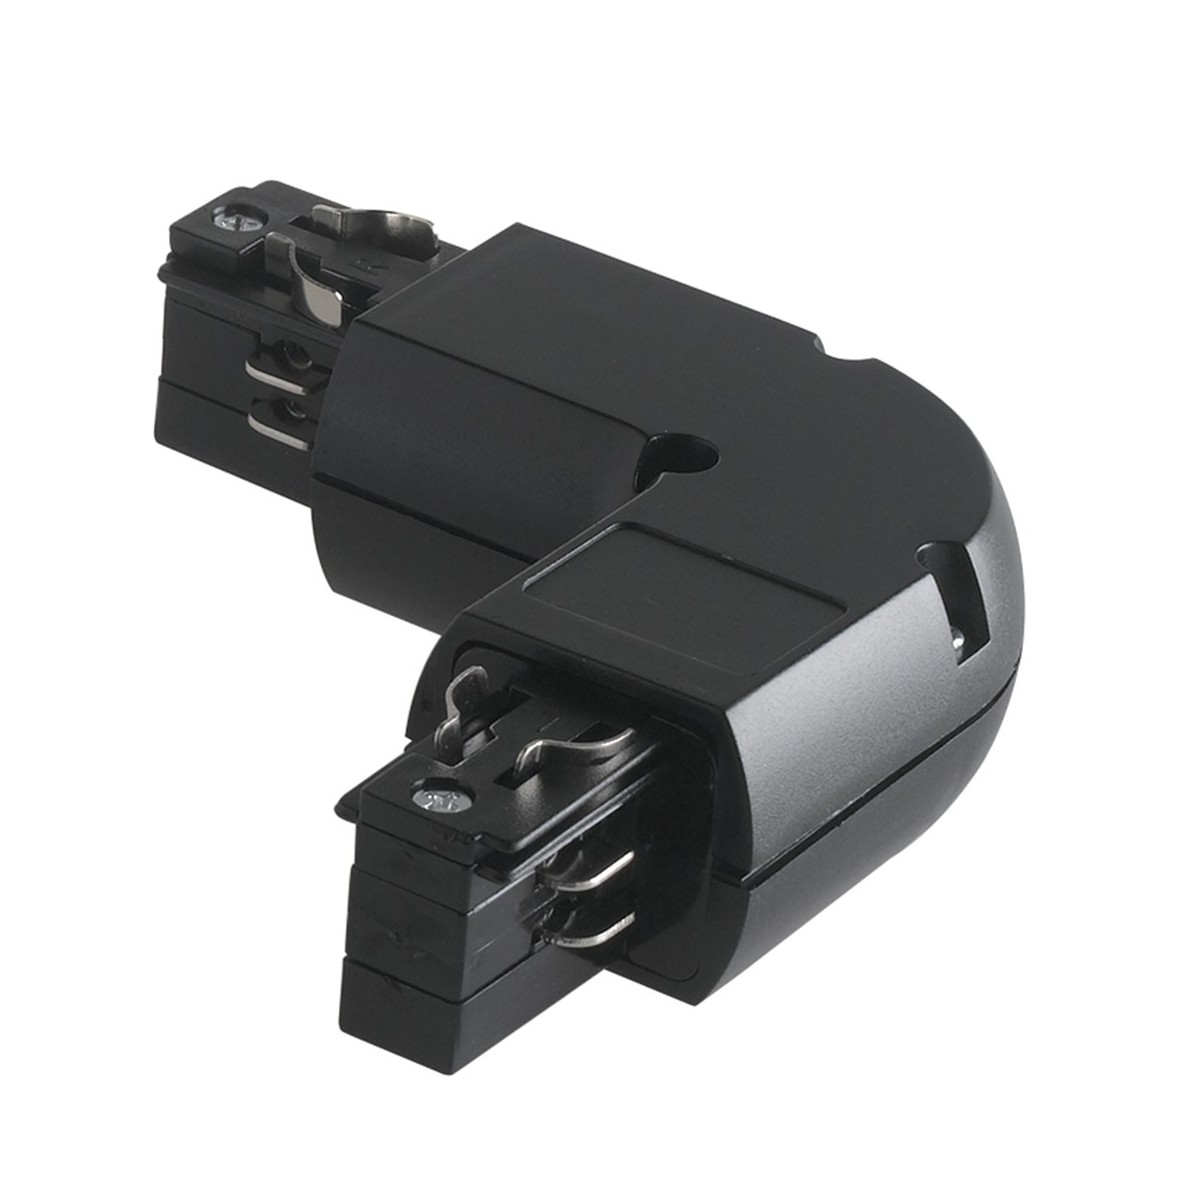 LED-TRACK-L BLACK - Connecteur en forme